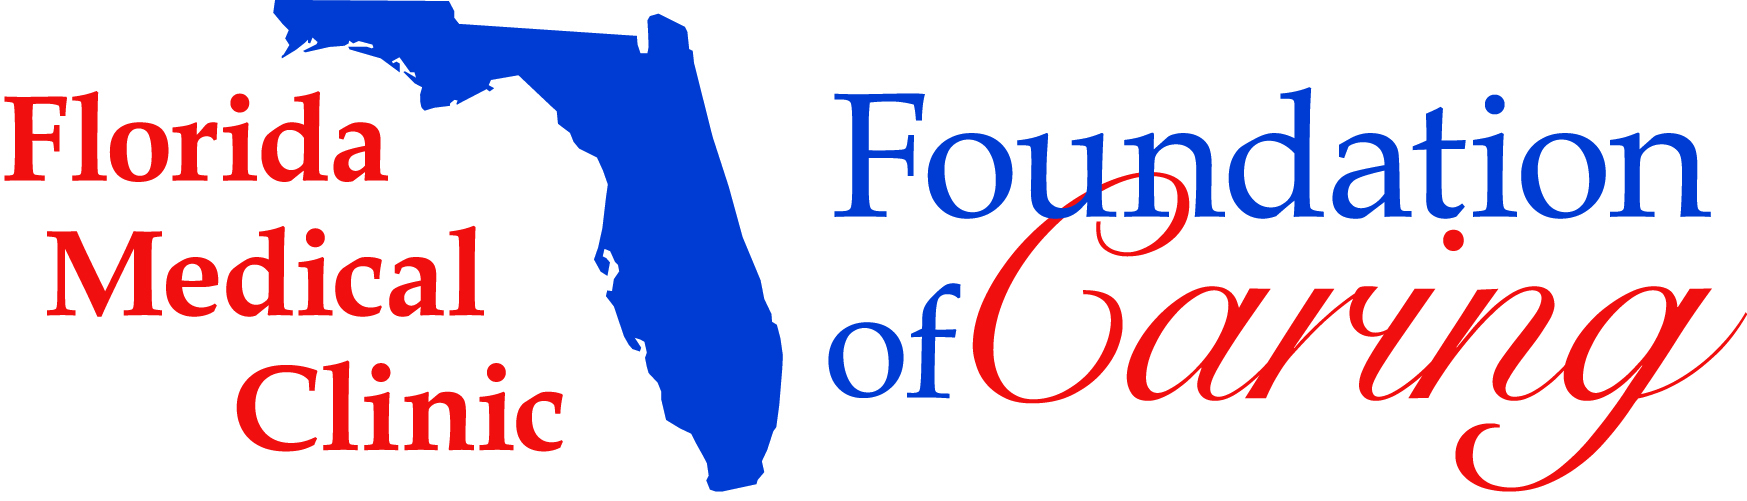 Florida Medical Clinic Foundation of Caring